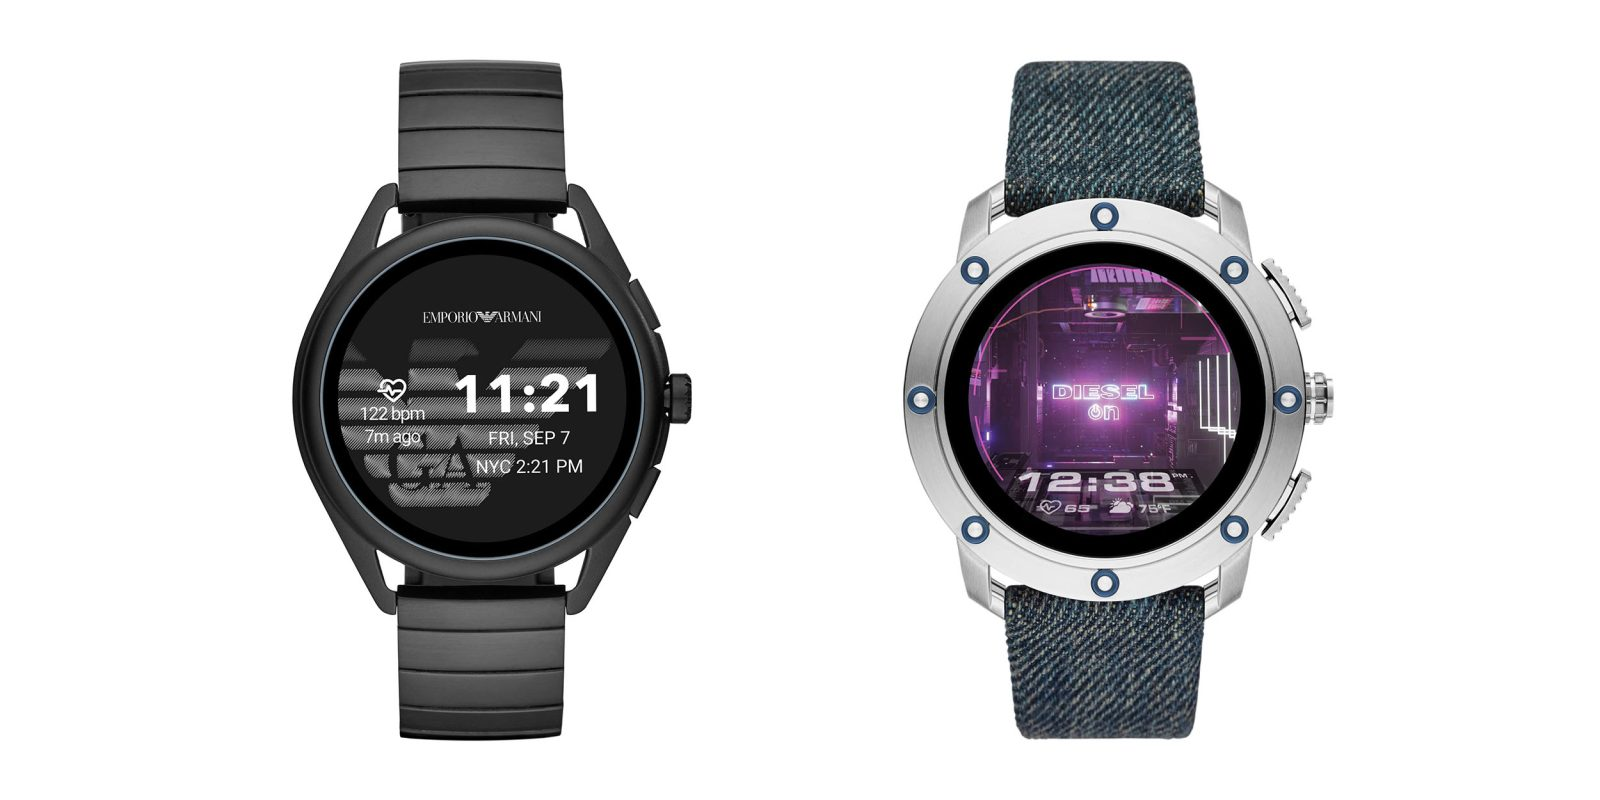 Diesel Smartwatch for Beginners